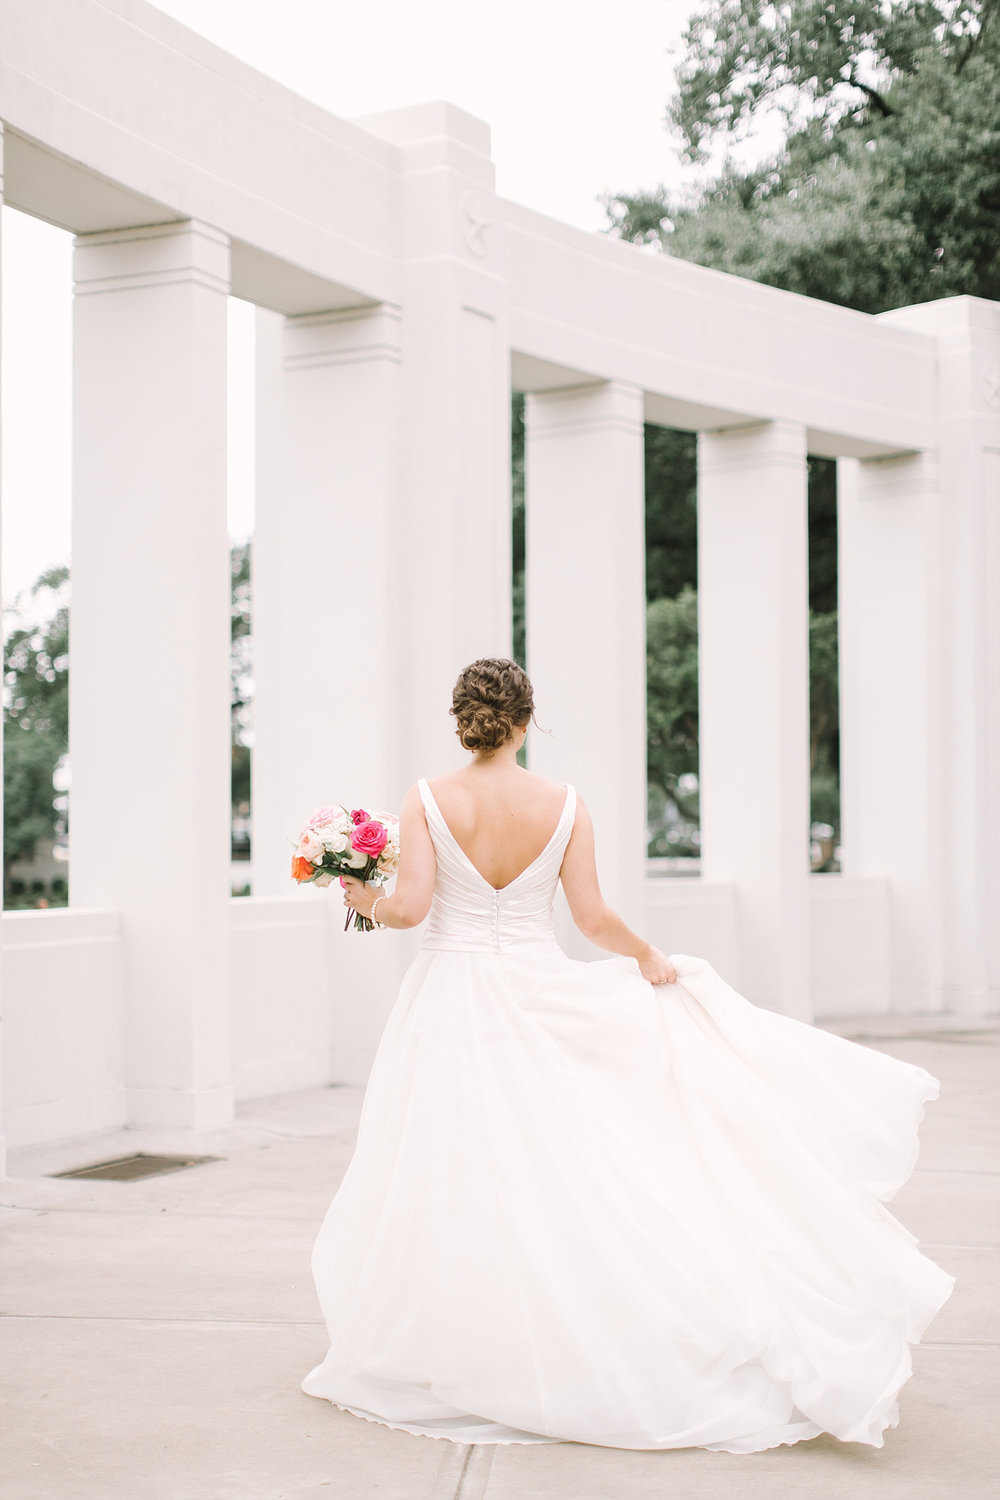 Bridal portrait at John Kennedy memorial